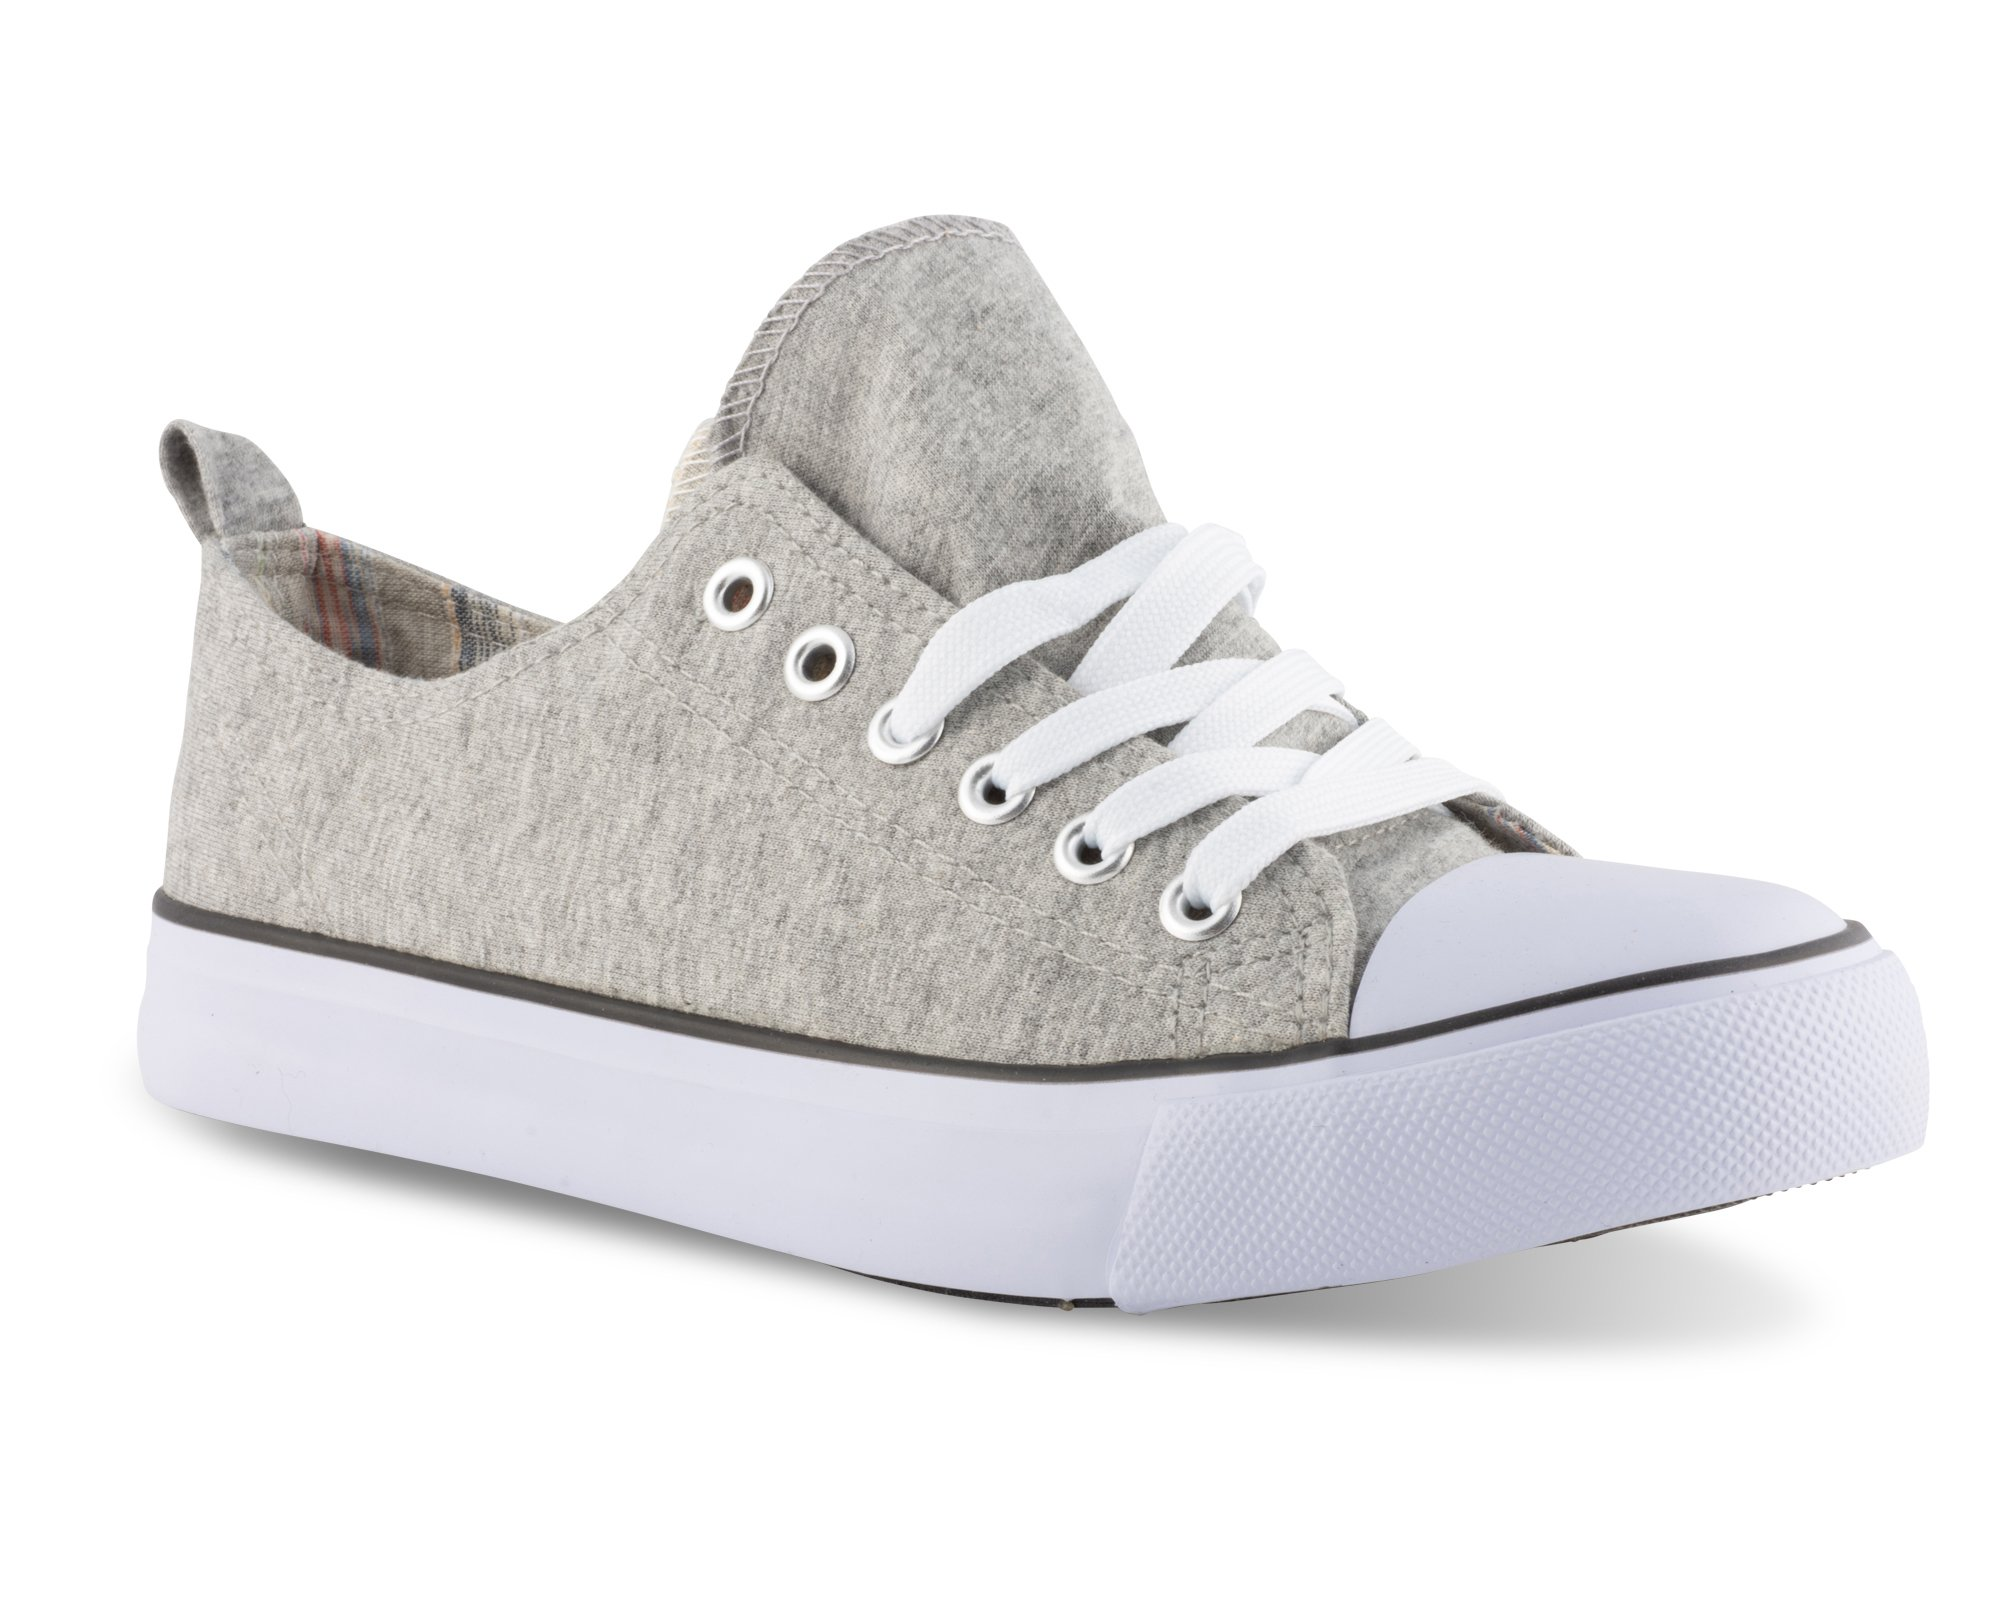 Twisted Women's Kix Printed Double Tongue Fashion Sneaker - KIXDT21 Grey, Size 6